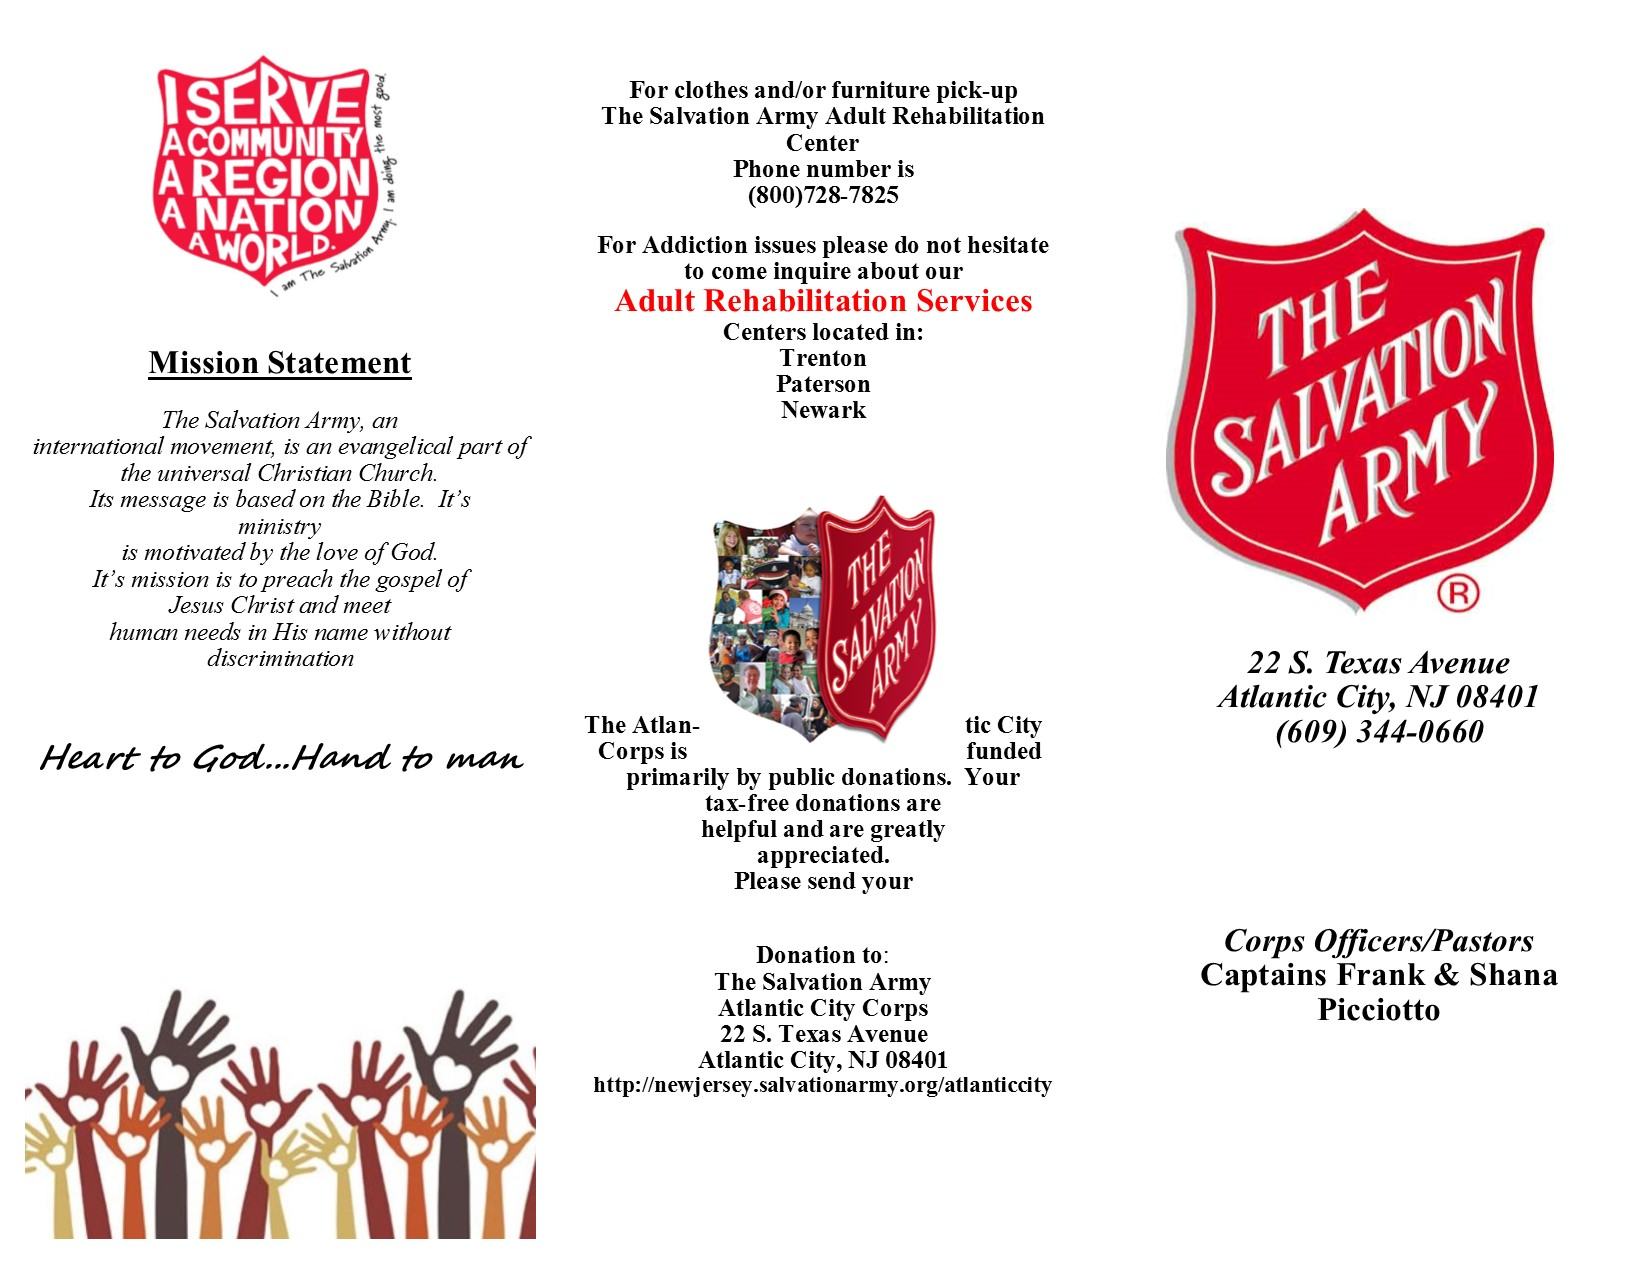 The Salvation Army New Jersey Division - Atlantic City